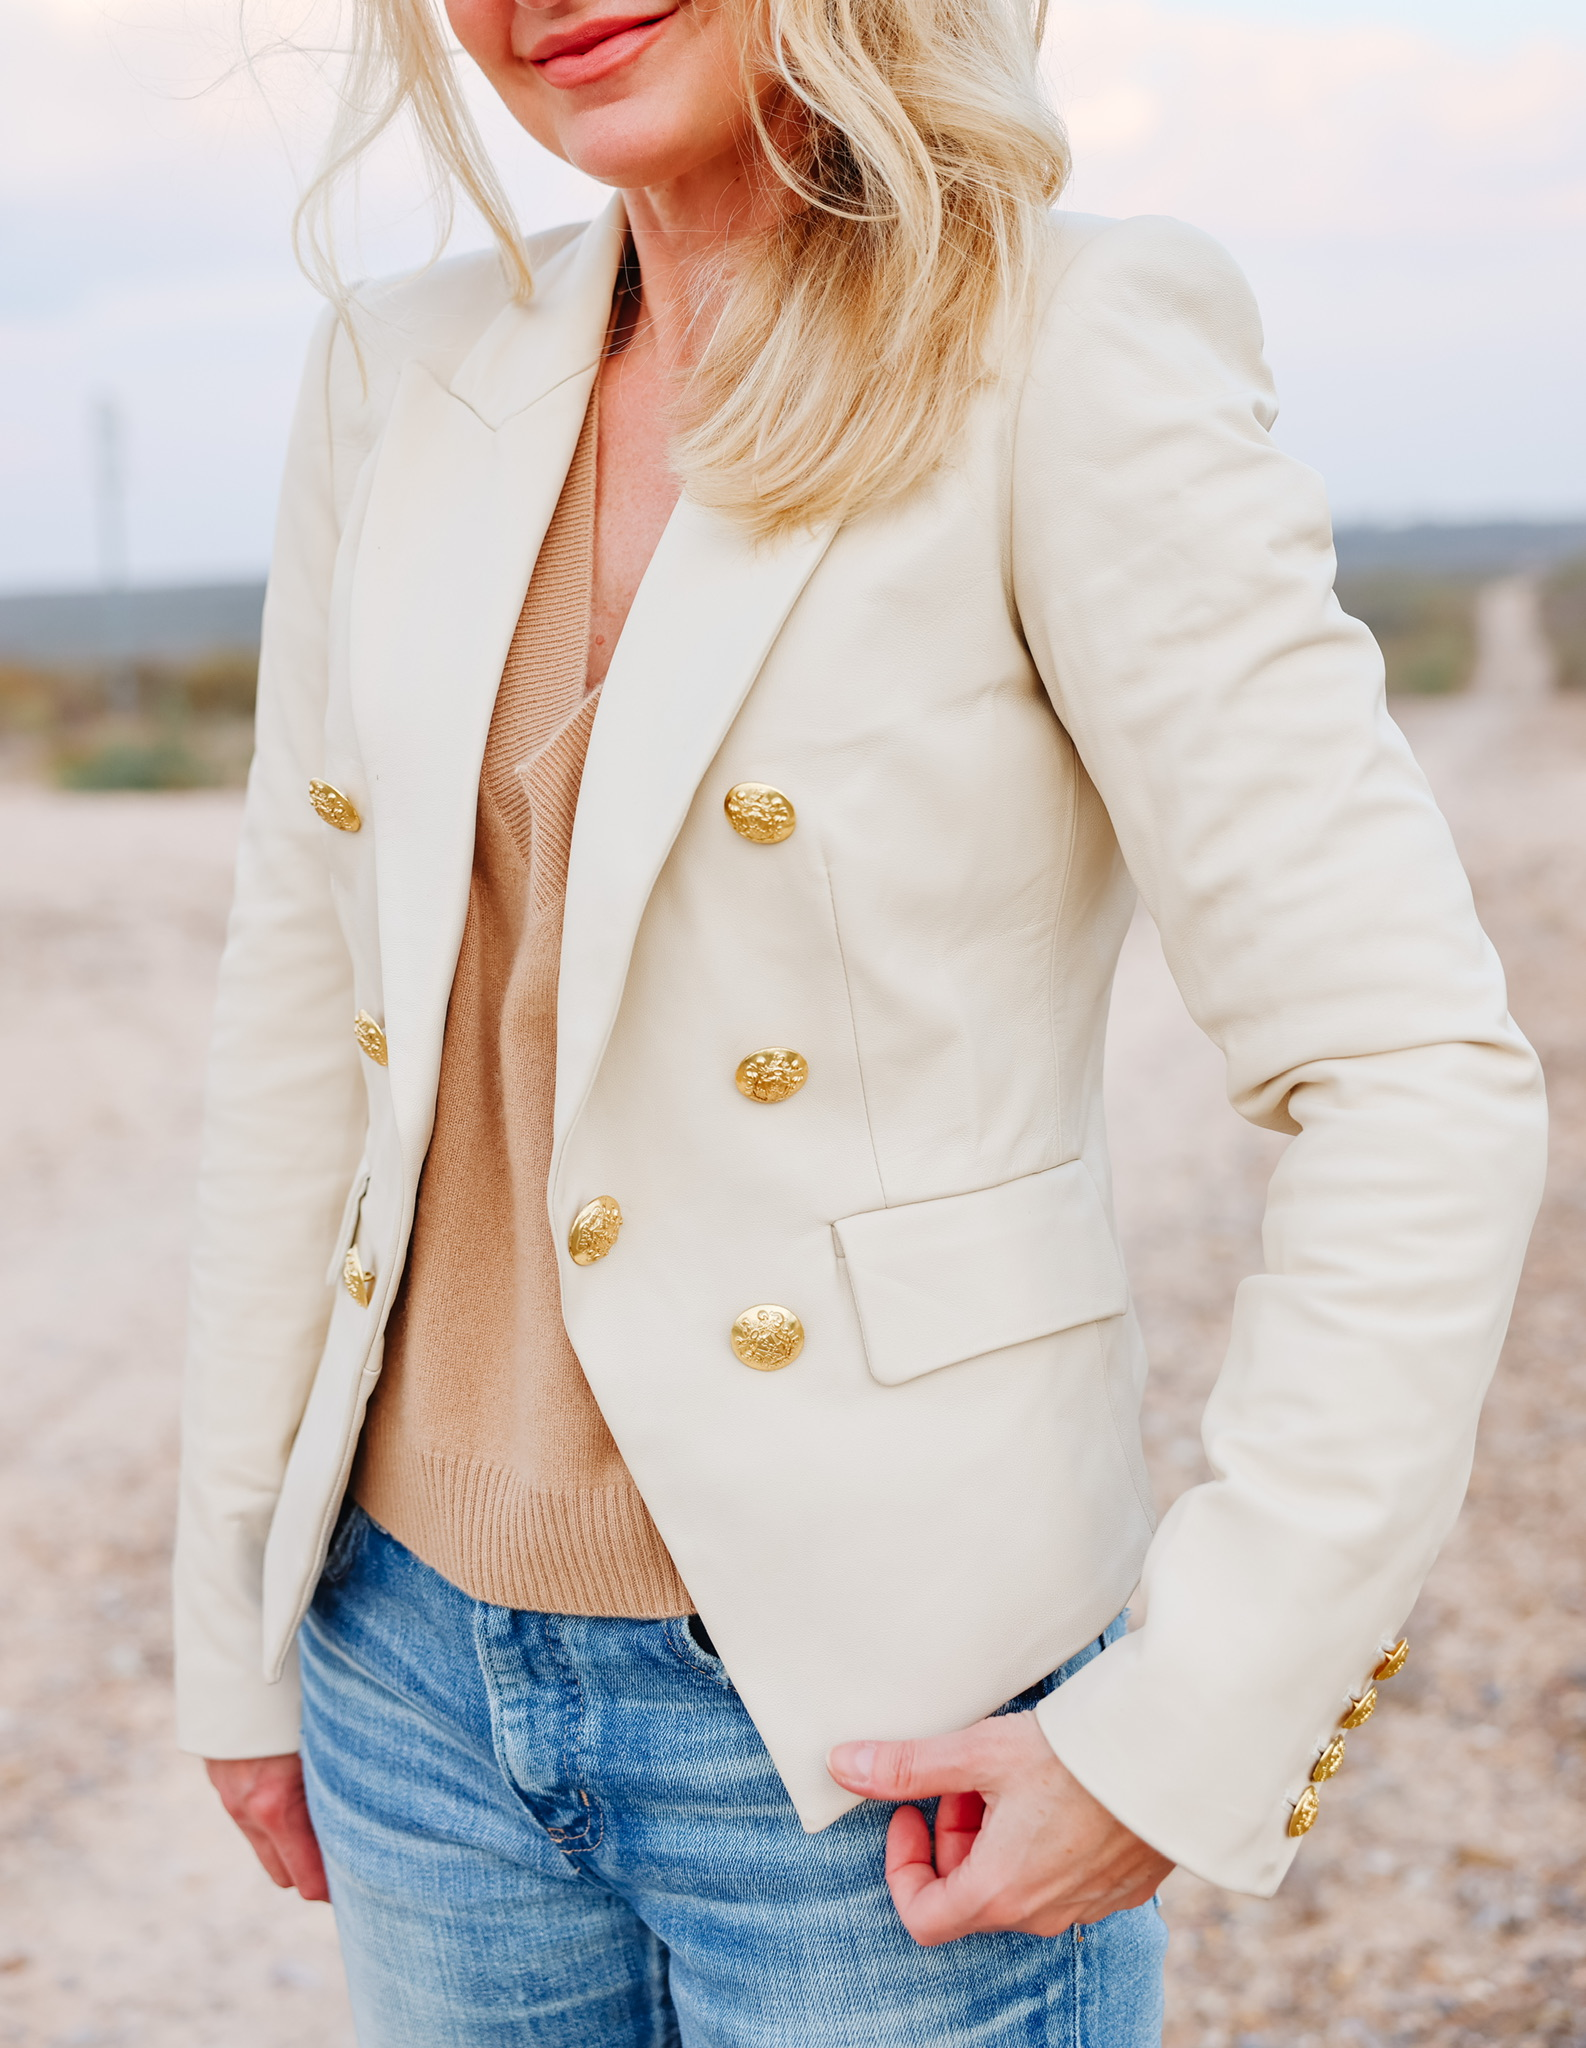 Blazers on women over 40 featuring style over 40 influencer Erin Busbee wearing Veronica Beard cooke blazer in white with camel sweater and moussy jeans